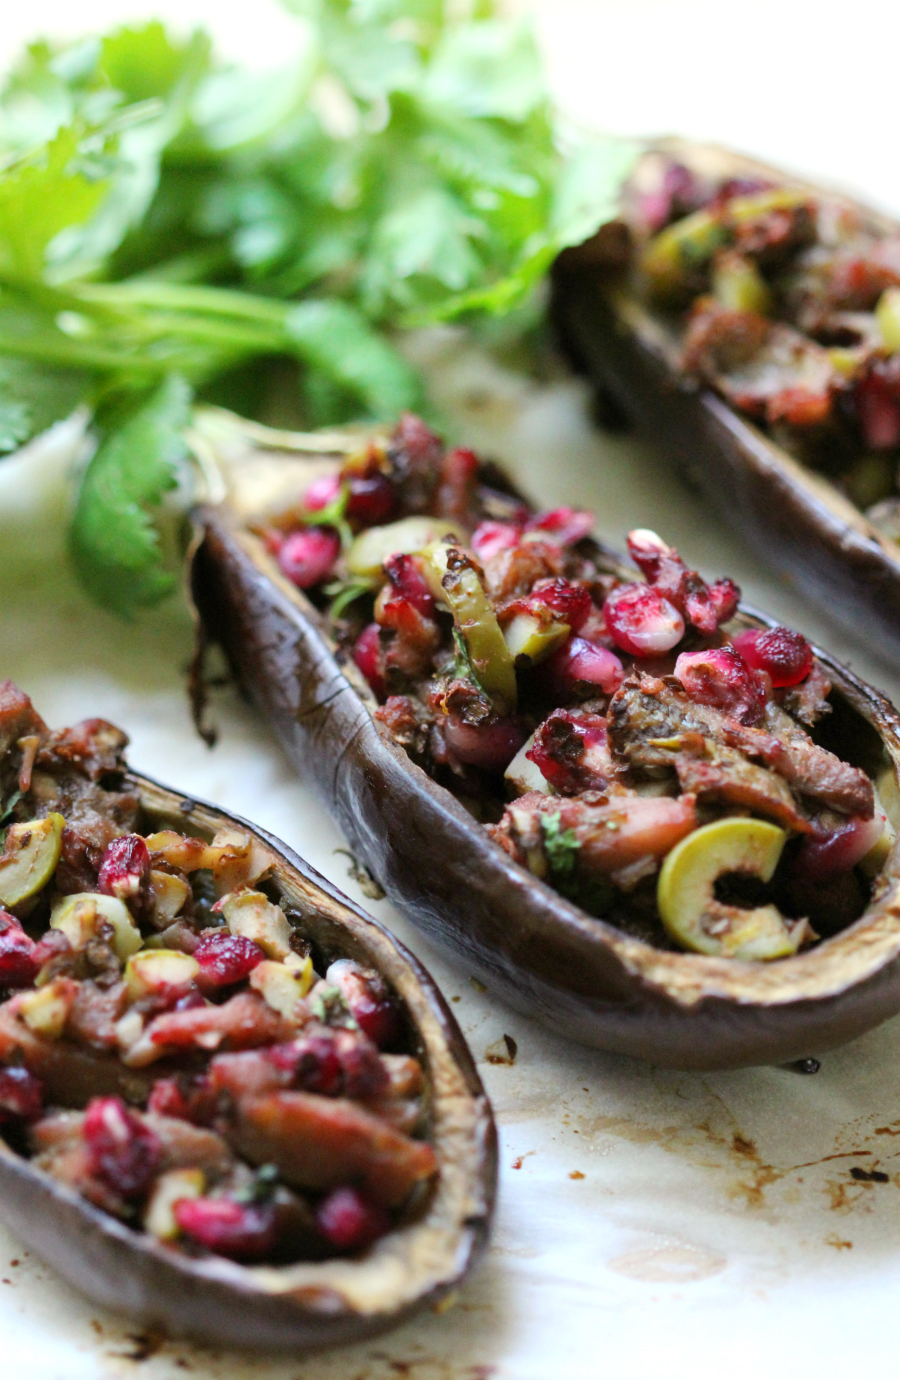 Middle Eastern Twice-Baked Baby Eggplants | Strength and Sunshine @RebeccaGF666 Flavorful Middle Eastern Twice-Baked Baby Eggplants make a delicious gluten-free, vegan, paleo, and allergy-free appetizer or side dish. An easy plant-based recipe that will wow the tastebuds with new exciting flavors!